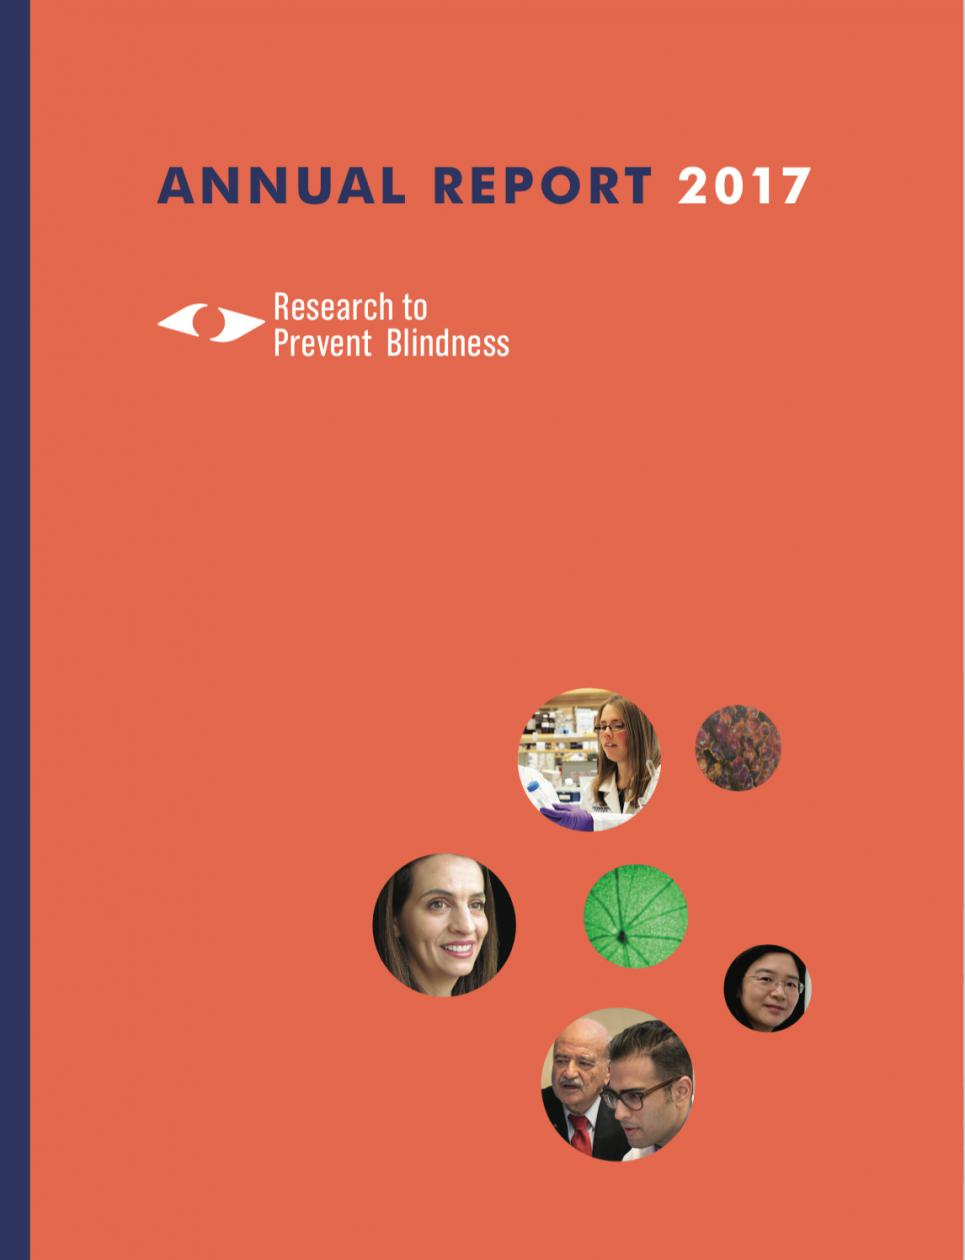 RPB 2016 Annual Report Cover